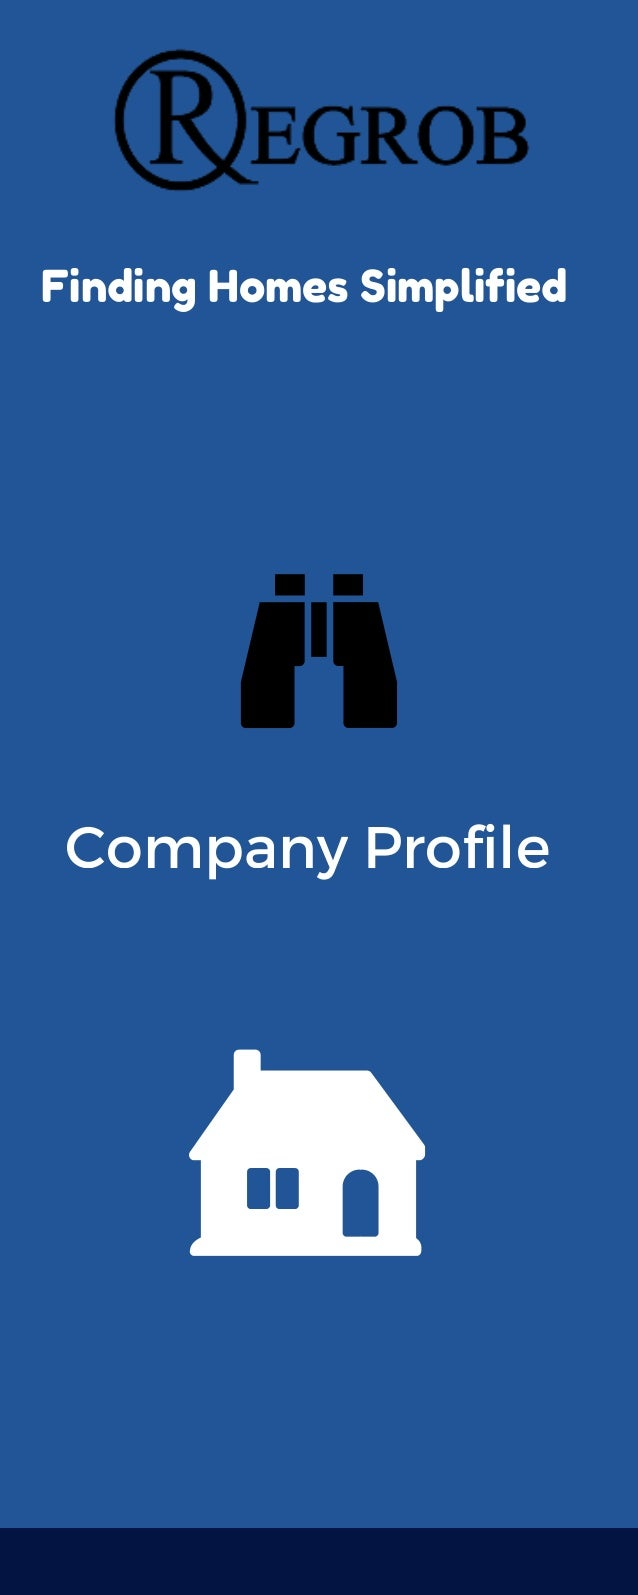 Finding Homes Simplified Company Profile